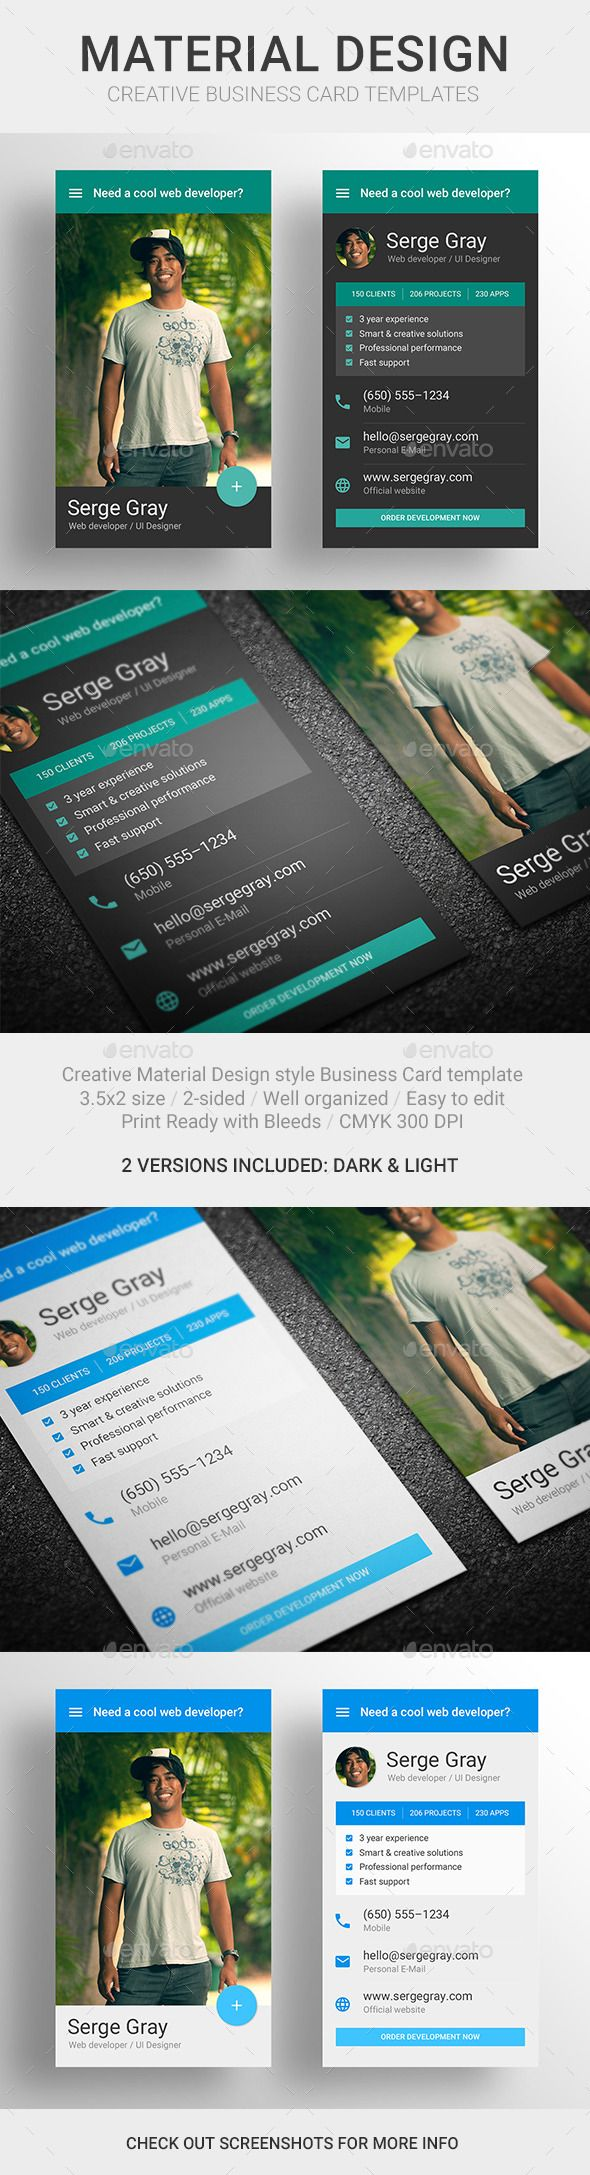 MaDe - Material Design Business Card Template | Material design ...